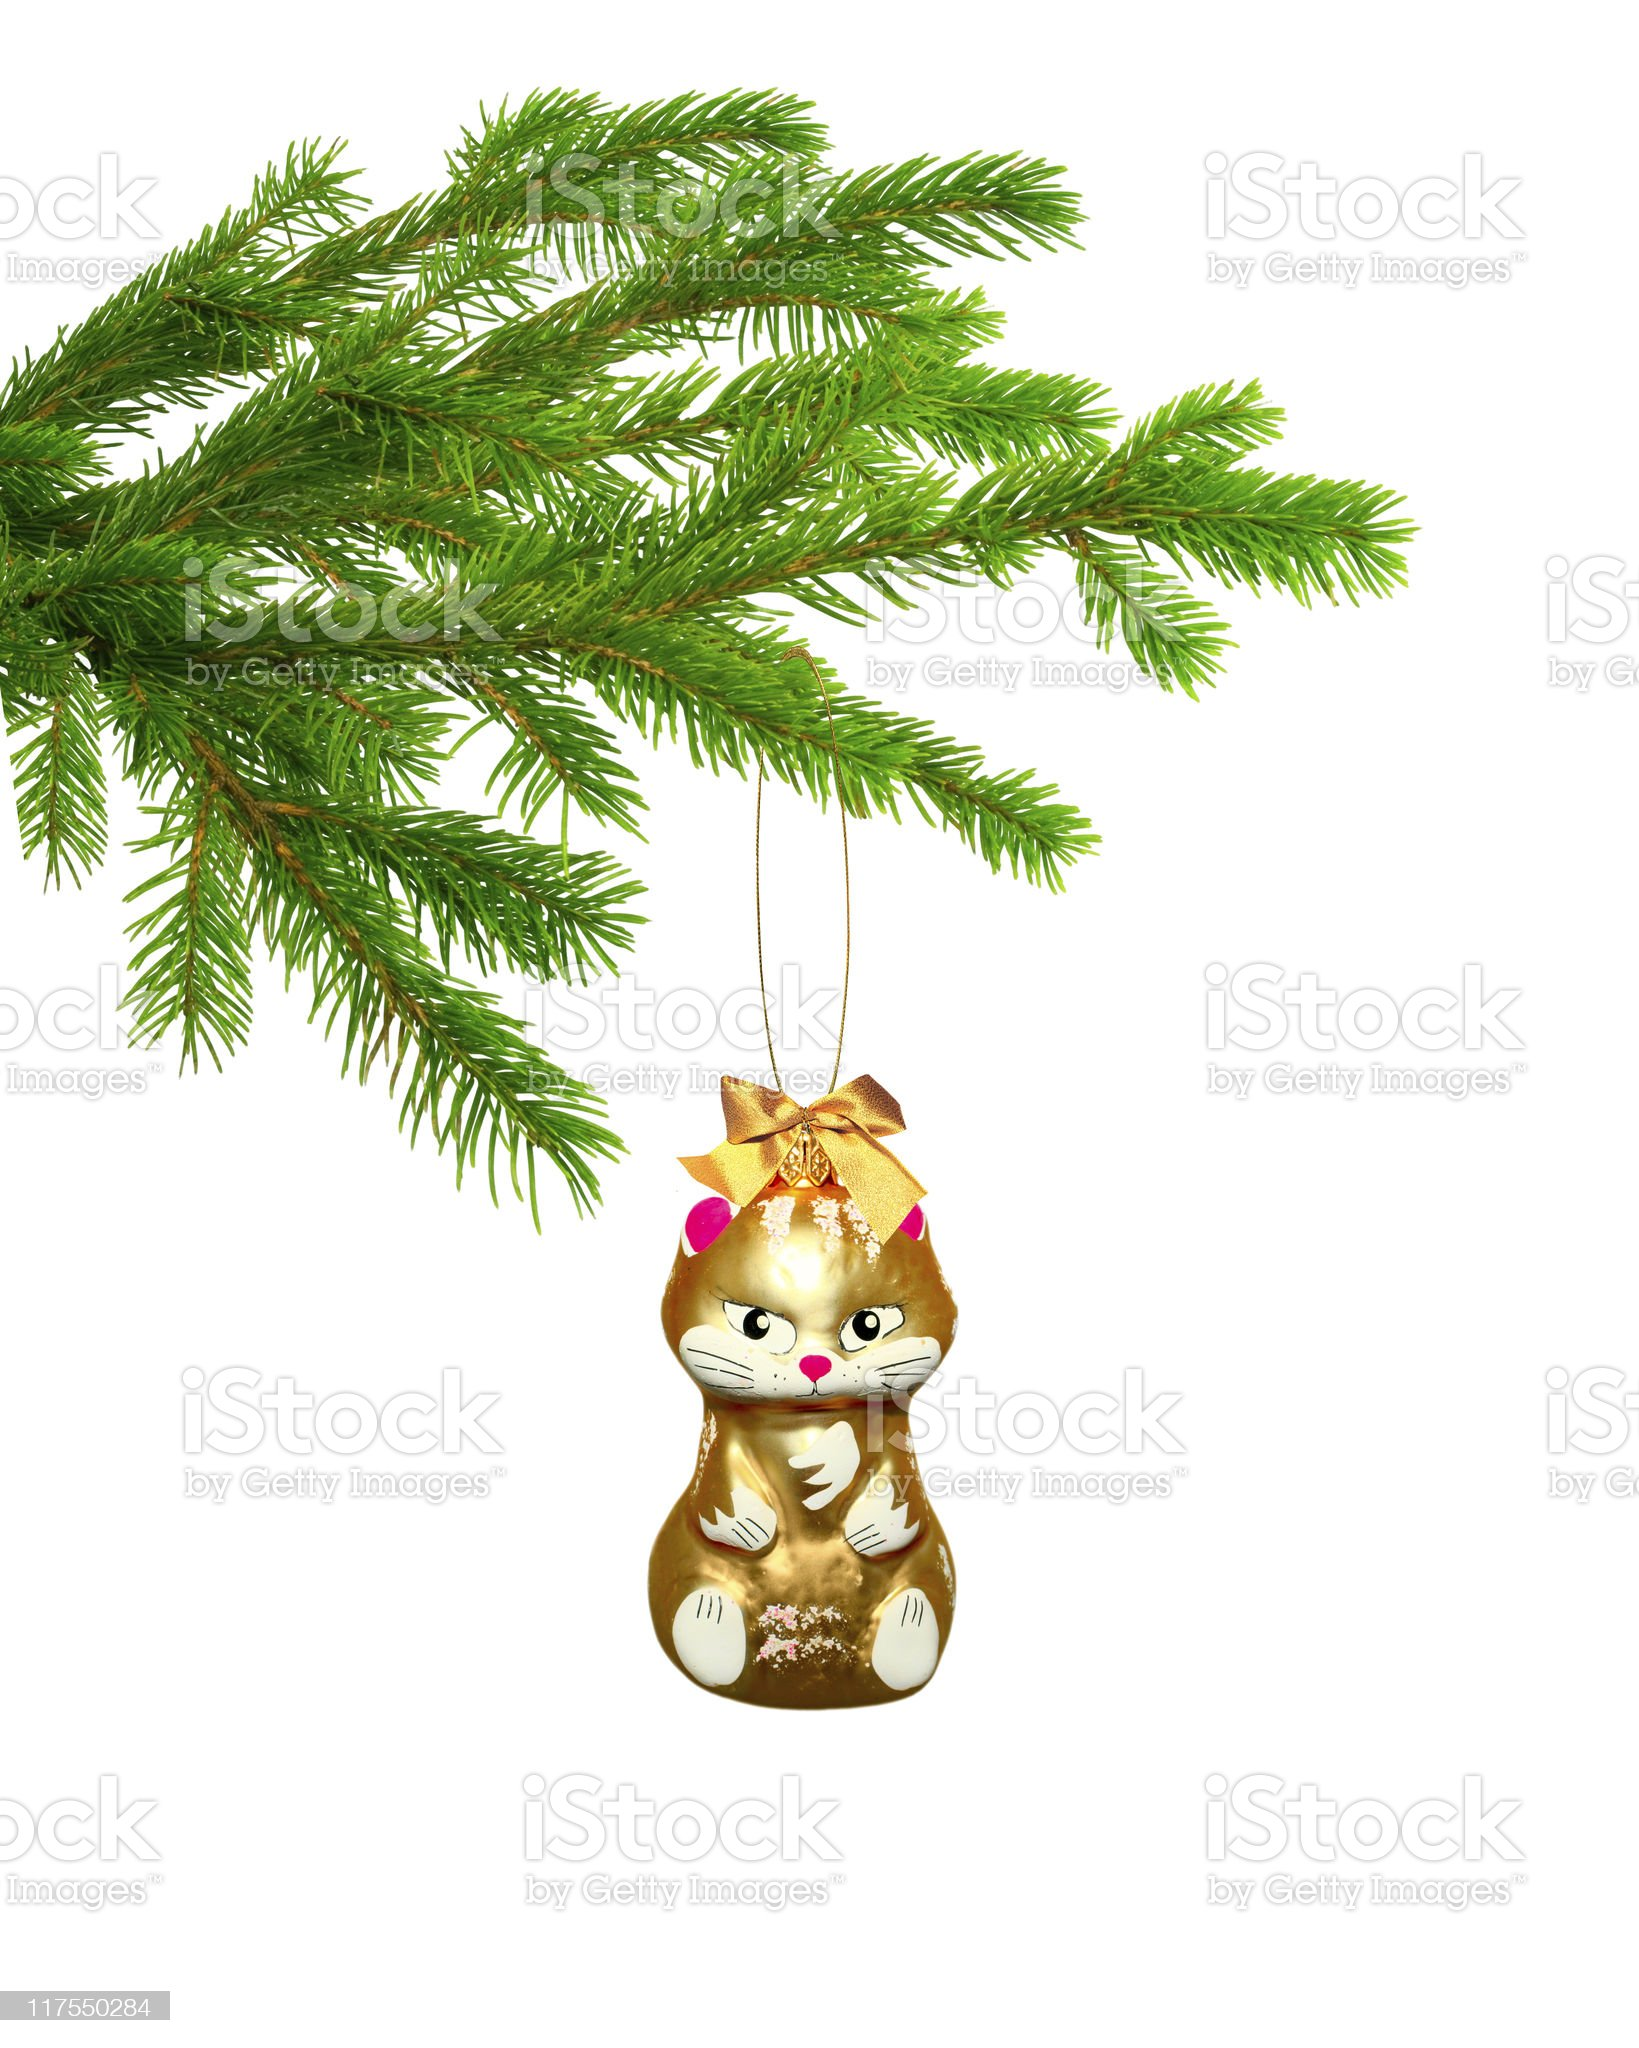 Christmas toy cat royalty-free stock photo